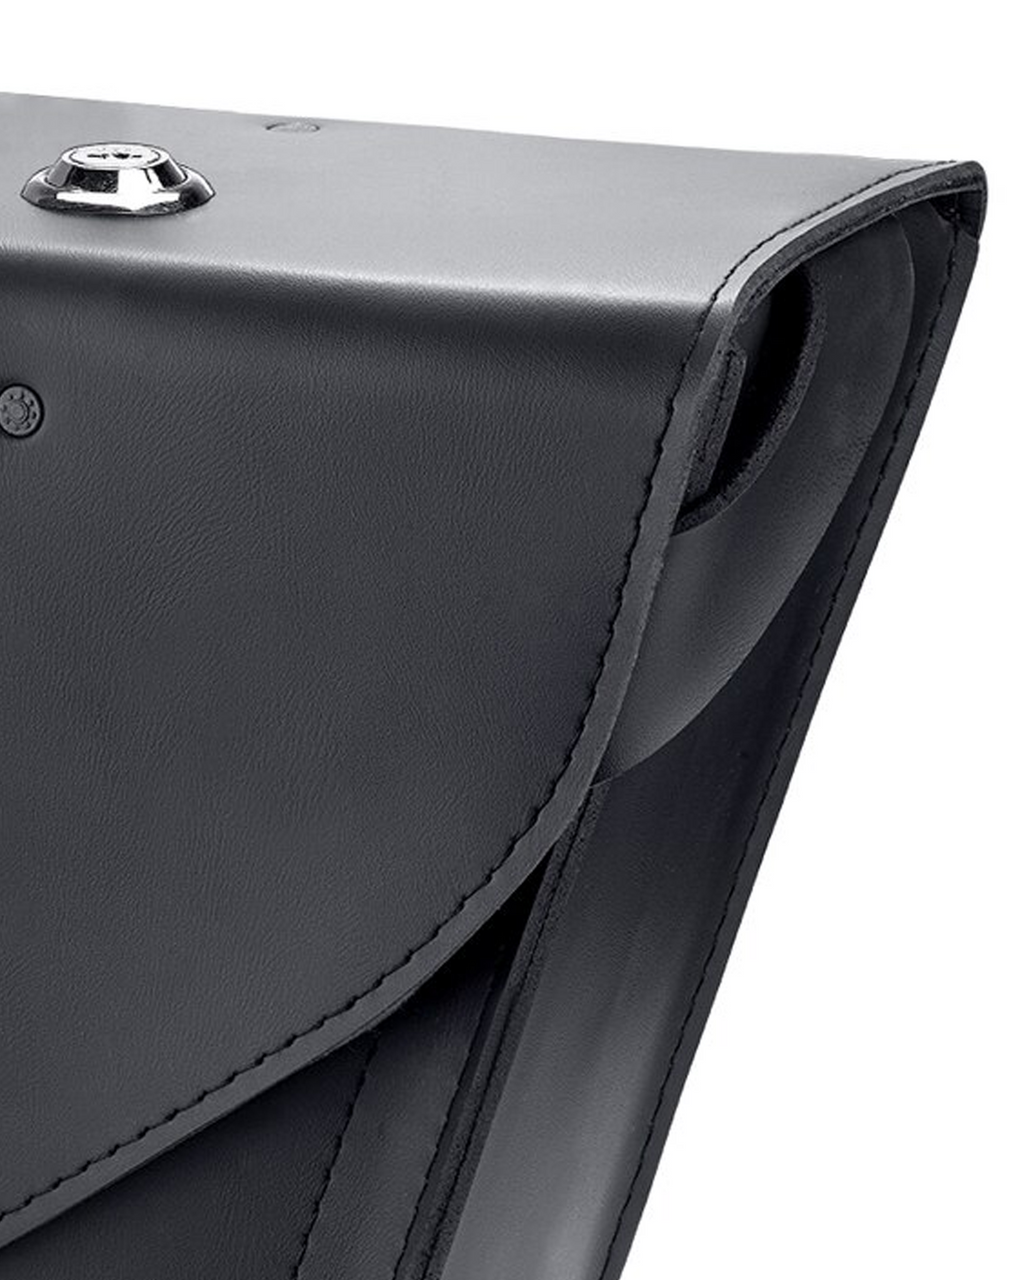 Viking Dark Age Compact Plain Leather Motorcycle Saddlebags For Sportster 1200 Low XL1200L Side View